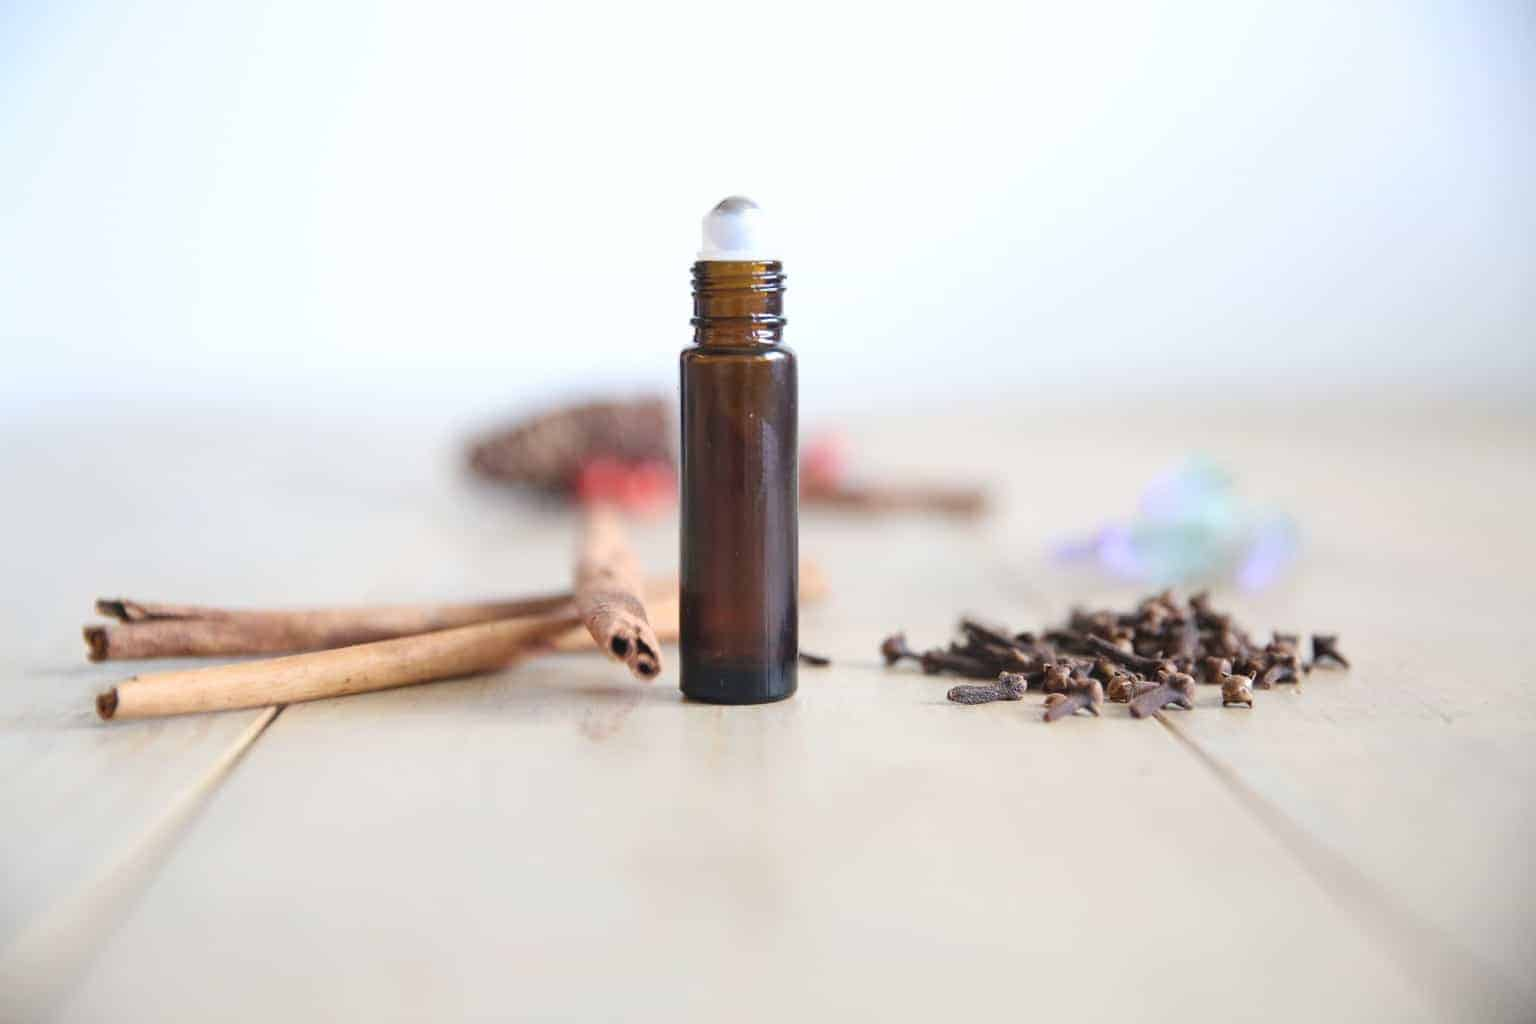 homemade floral scented women's rollerball perfume surrounded by cinnamon sticks